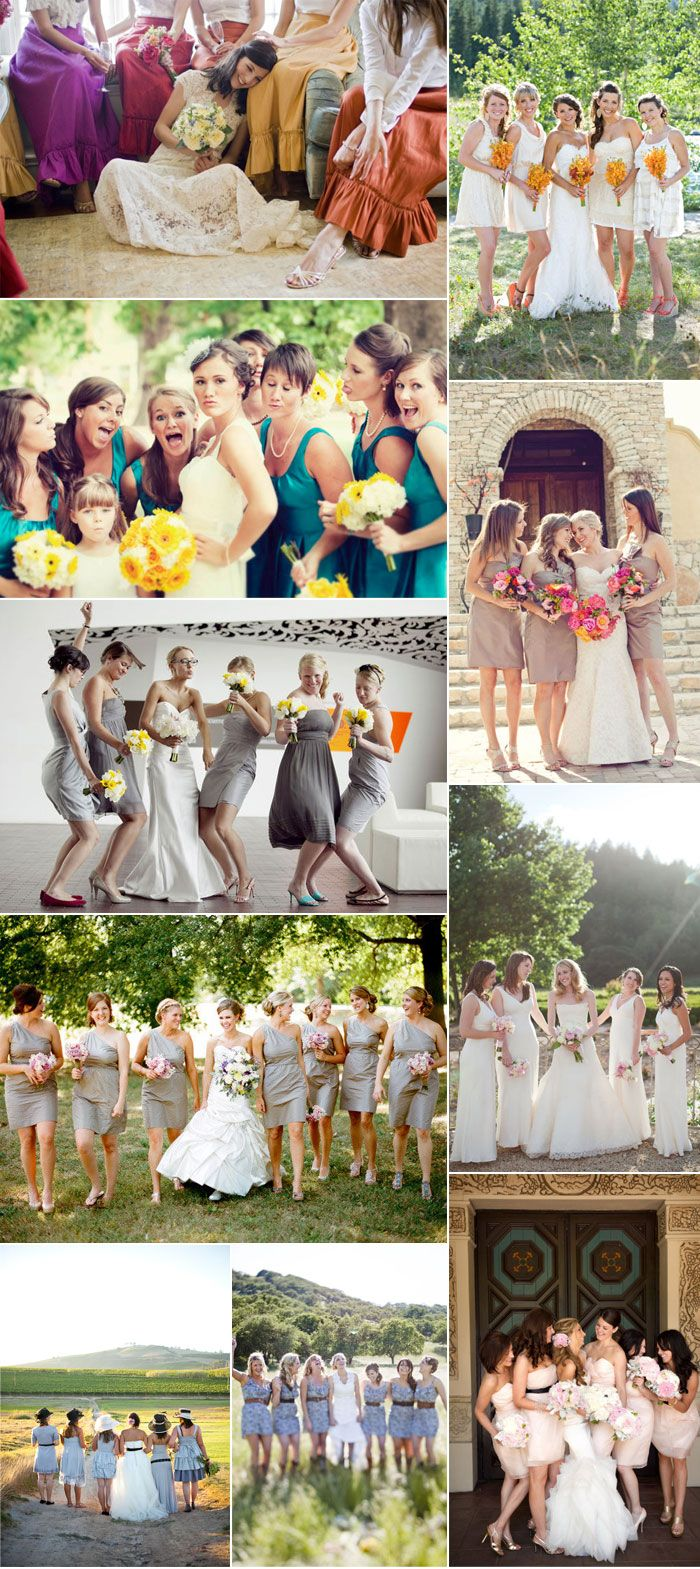 I only like the bridemaids dresses and flowers in the secind one down on the right.. yeeaa :))